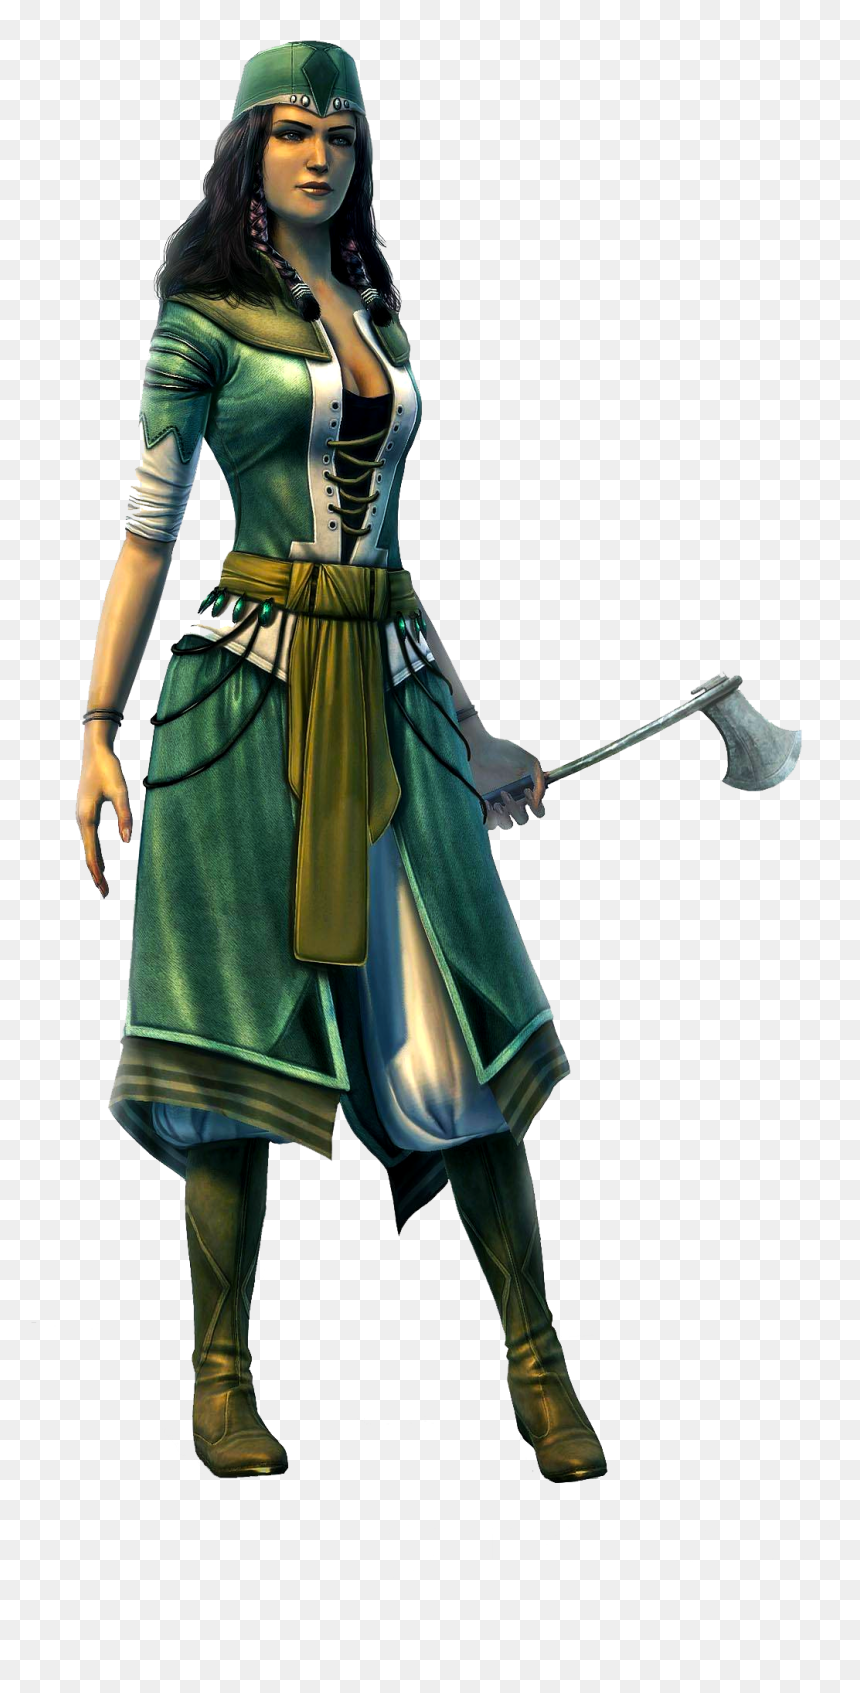 Assassin S Creed Revelations Girl Characters Hd Png Download Vhv